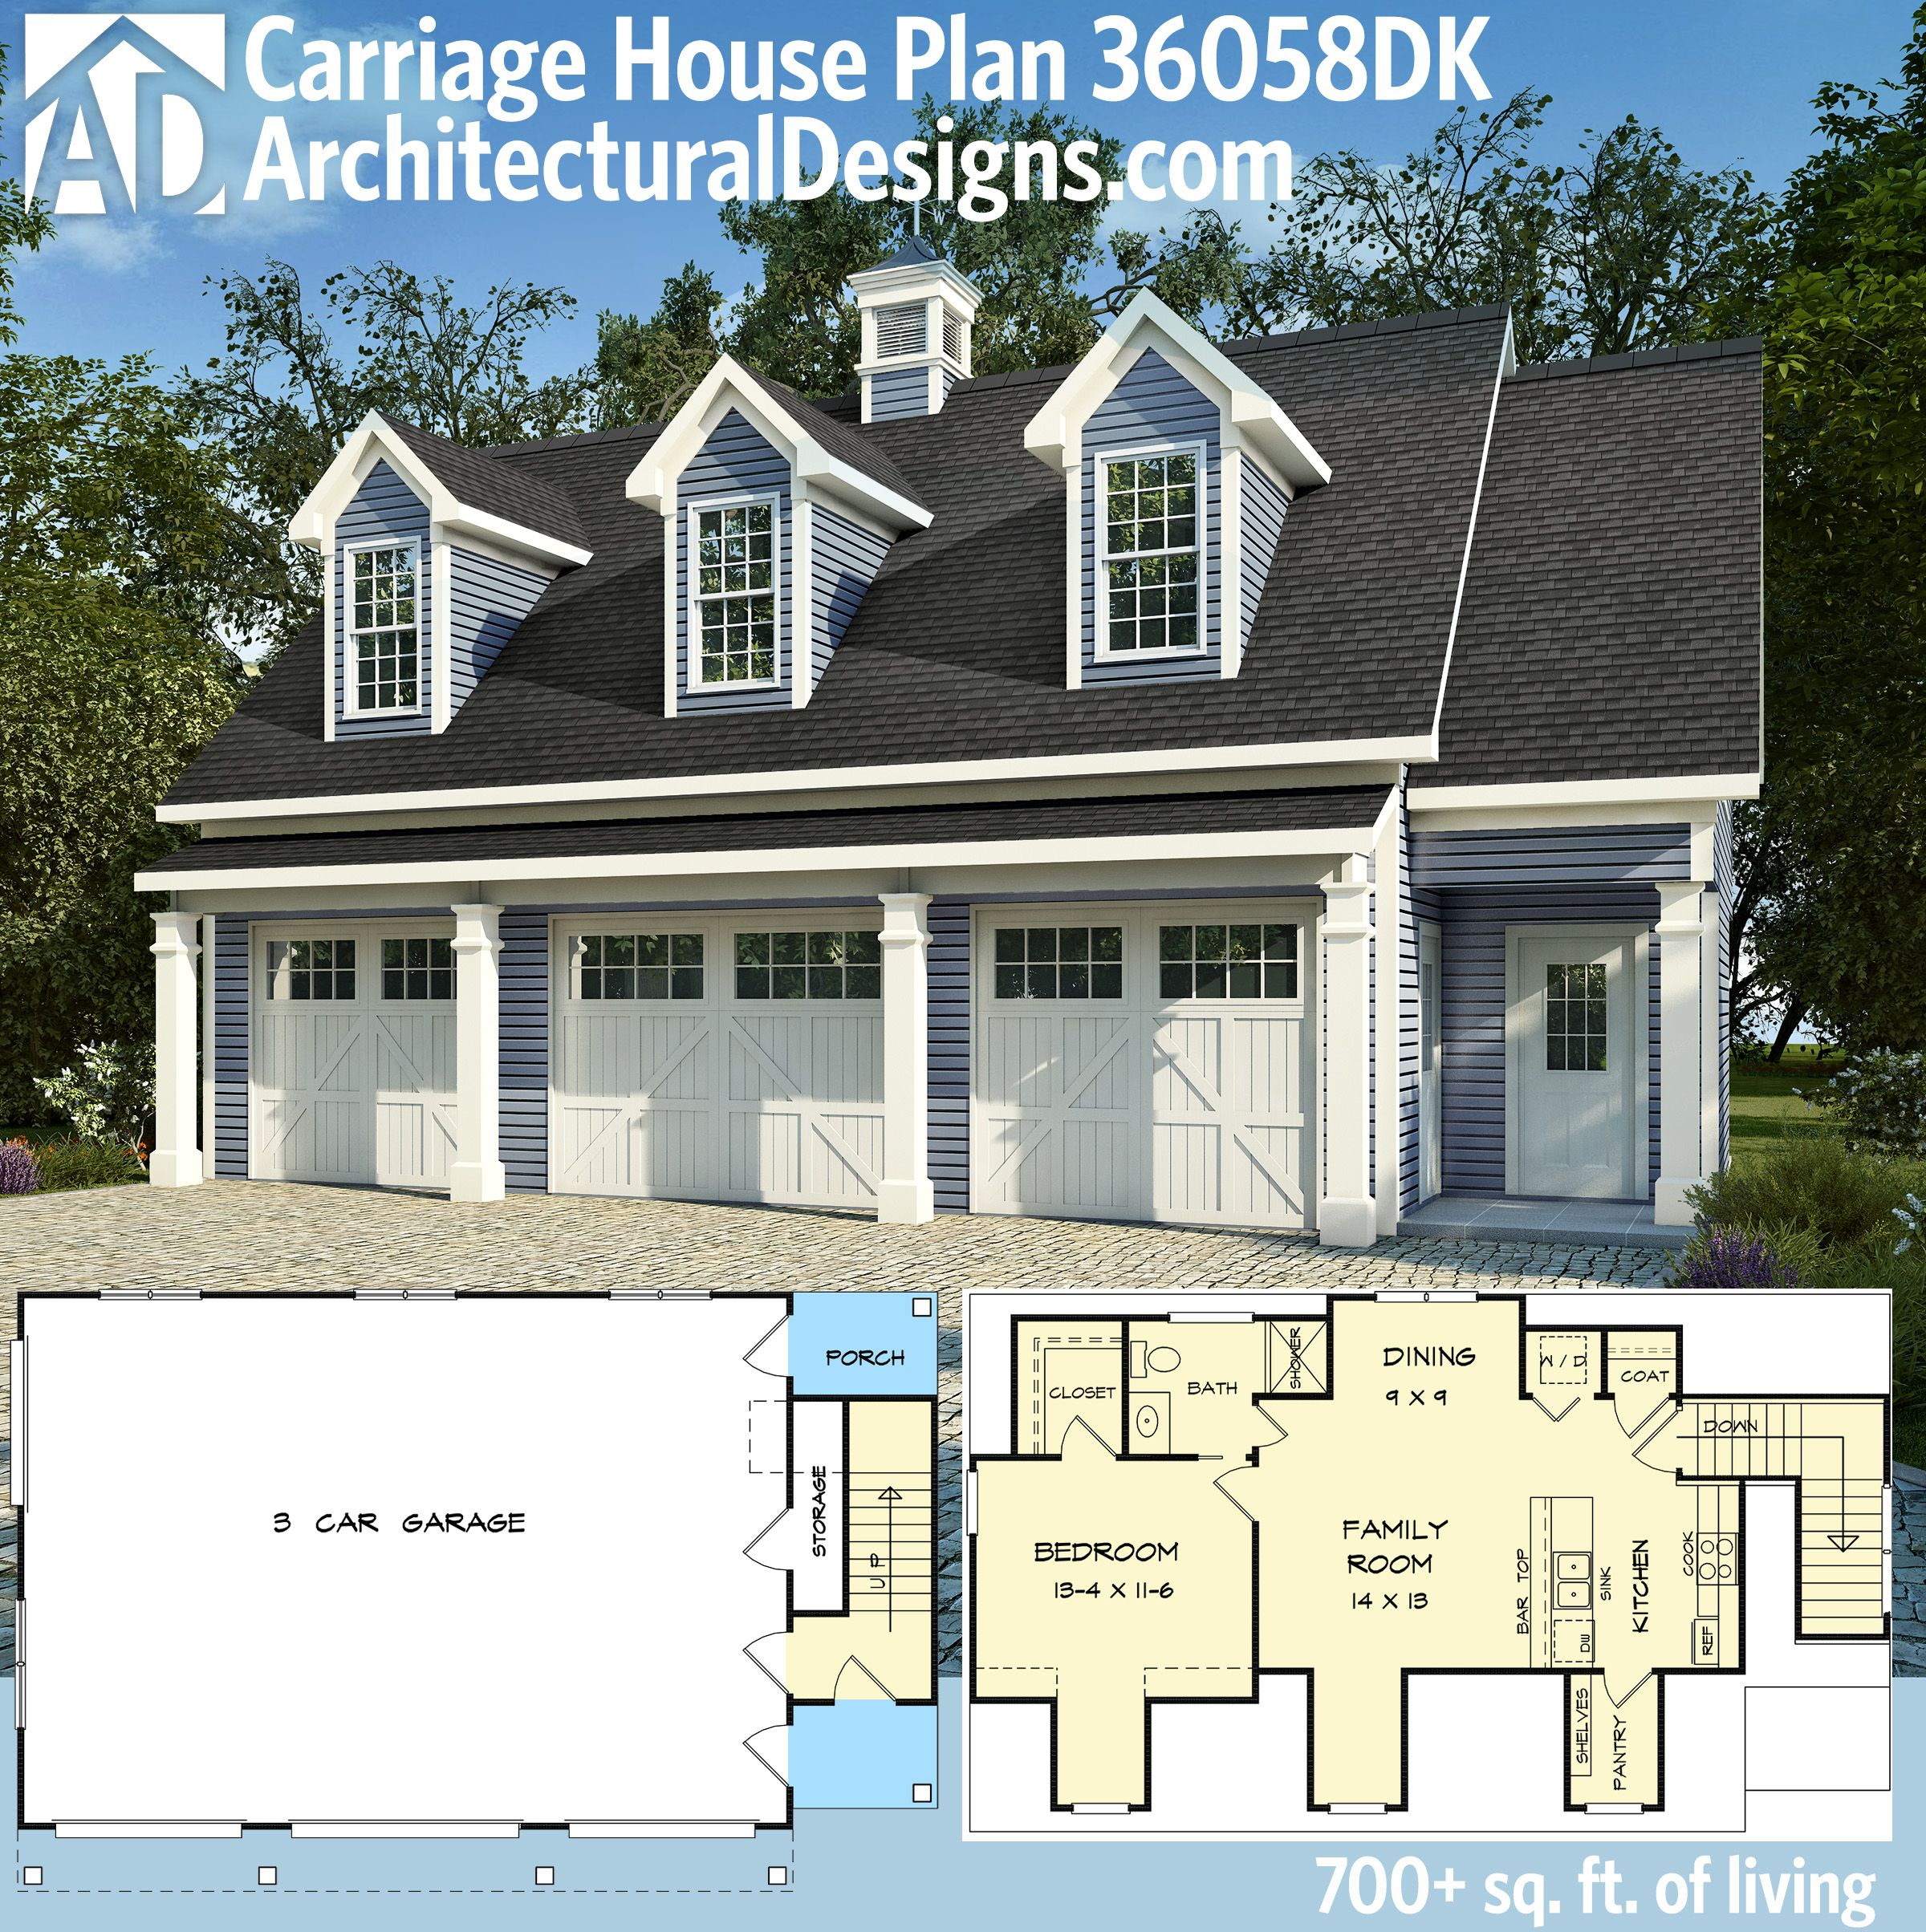 Plan 36058dk 3 car carriage house plan with 3 dormers for Average sq ft of 2 car garage